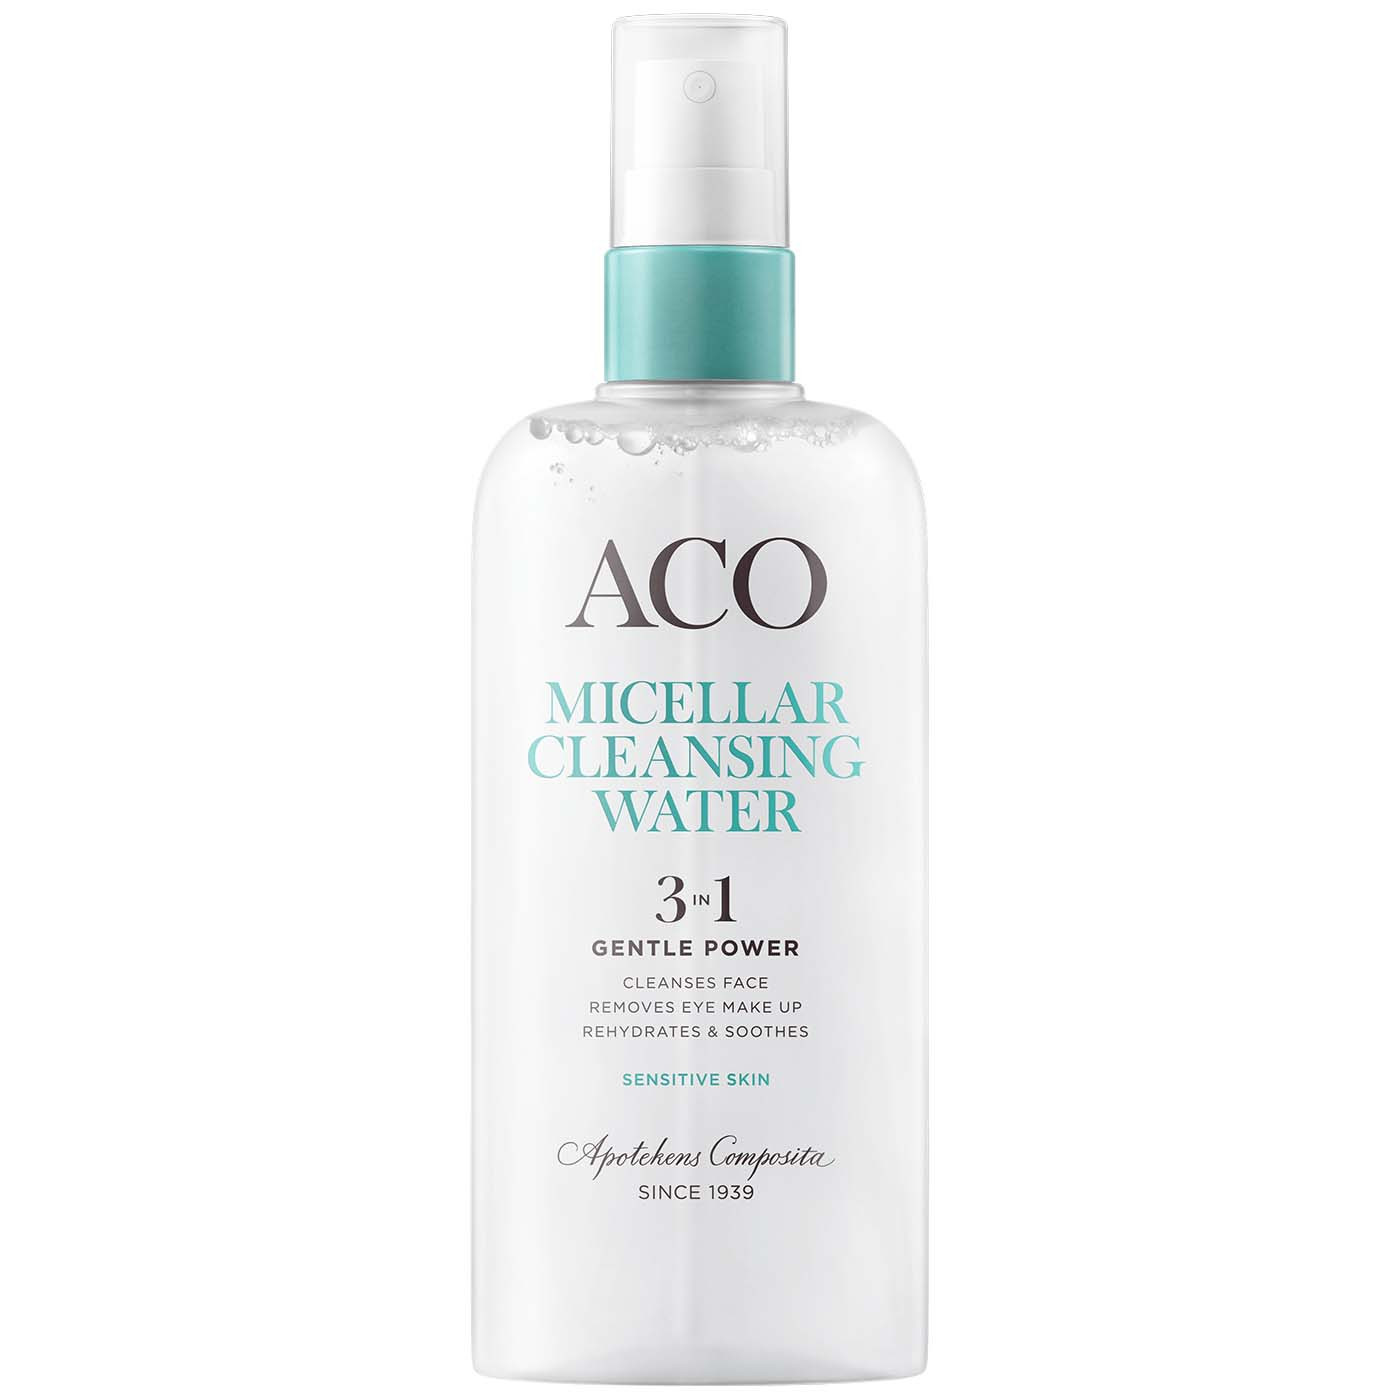 ACO Face Micellar Cleansing Water